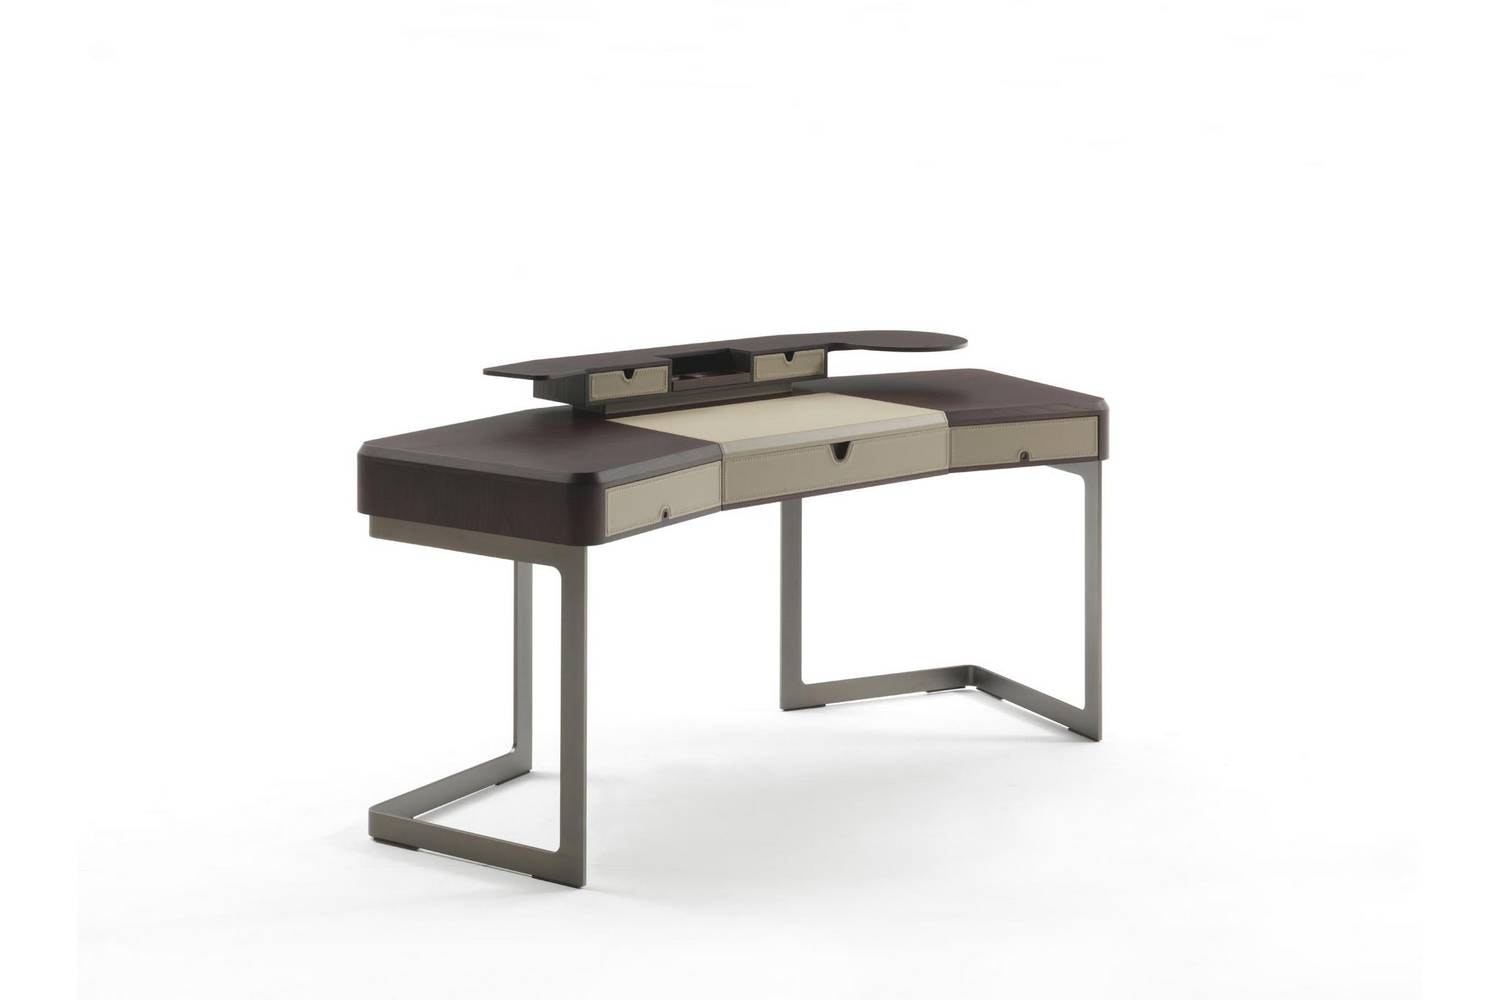 Tom Writing Desk by C. Ballabio for Porada